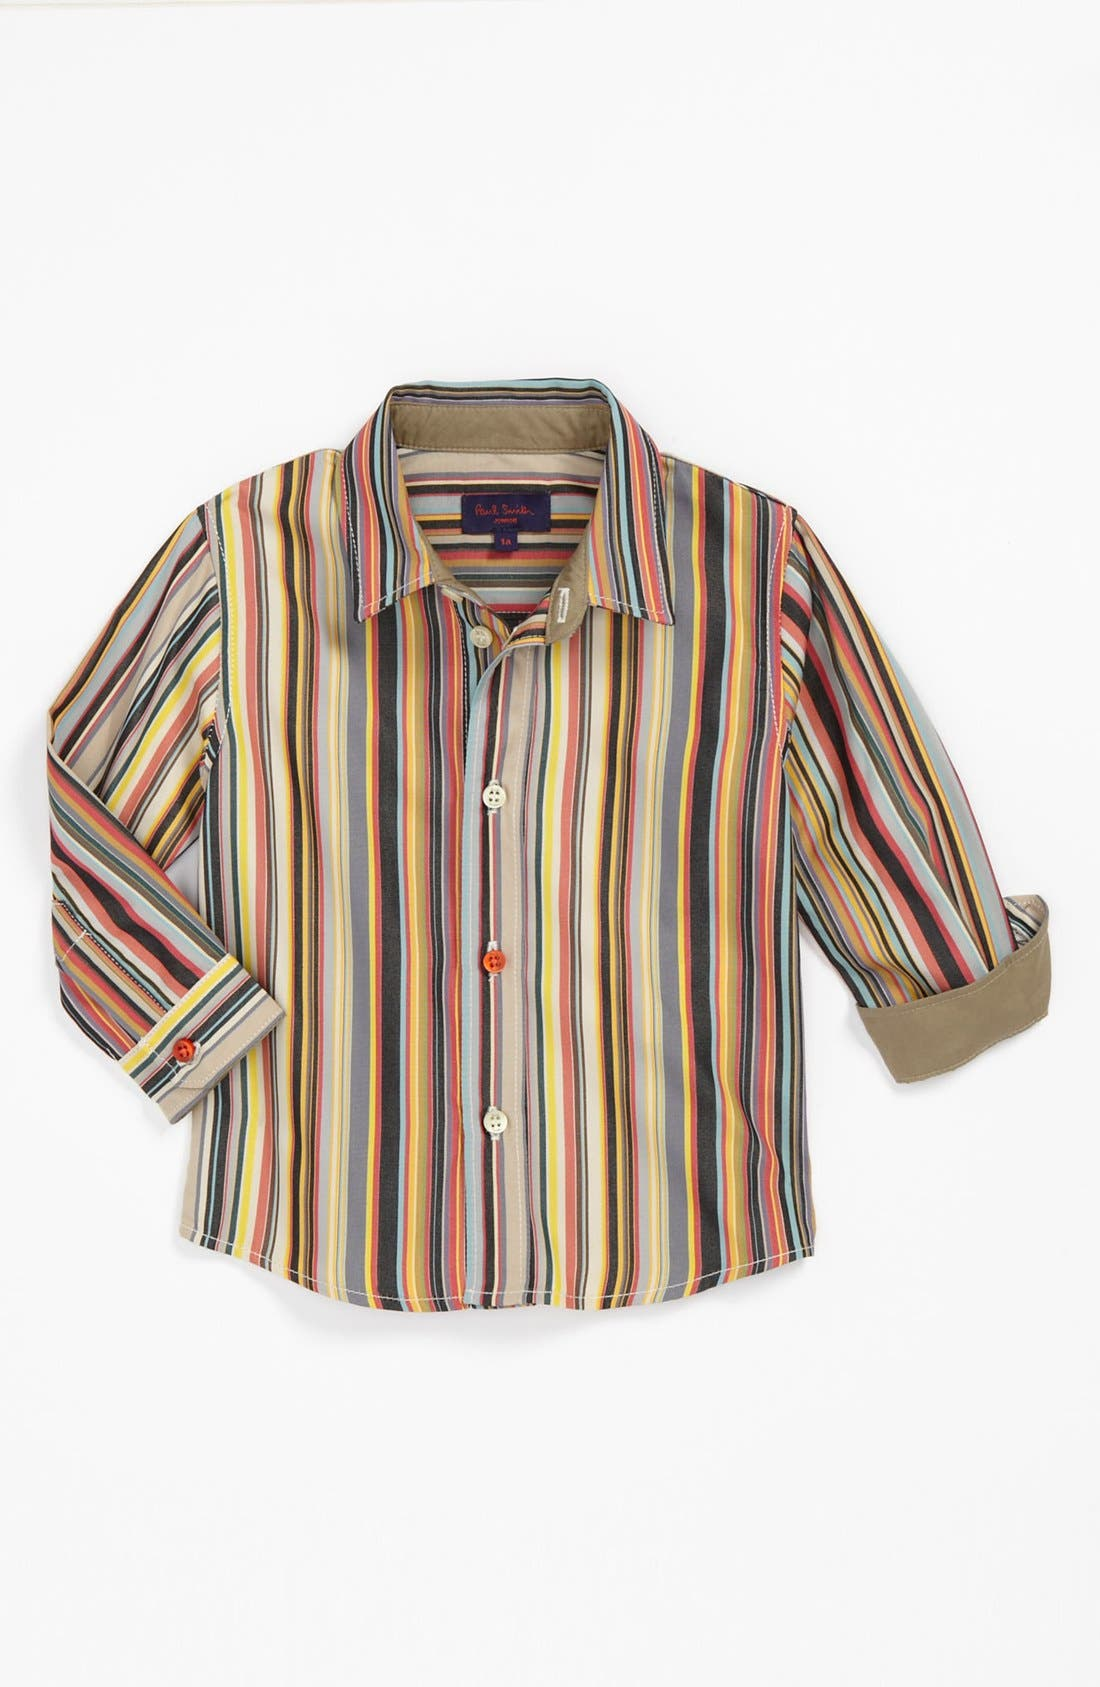 Alternate Image 1 Selected - Paul Smith Junior Woven Shirt (Toddler)